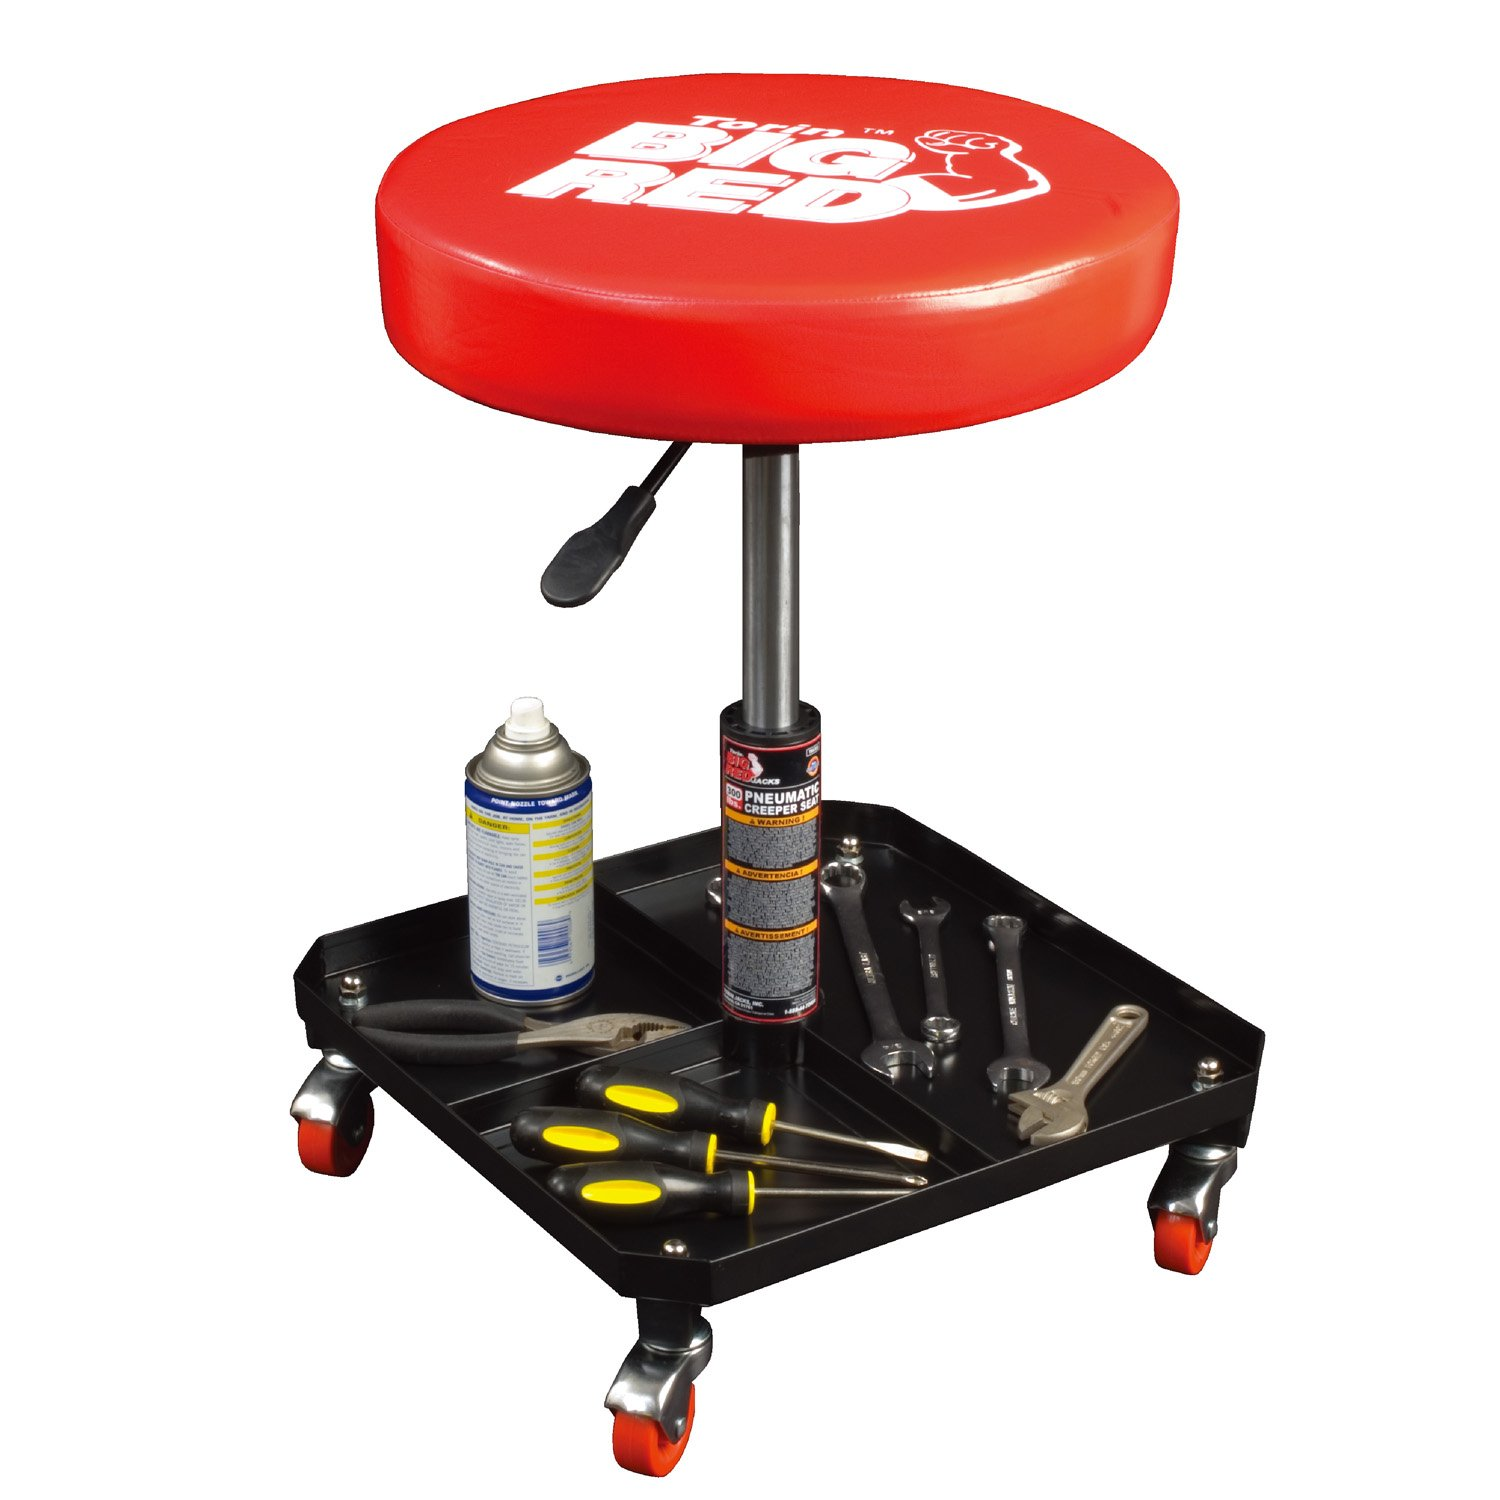 81 New Snap On Pneumatic Shop Stool Adjustable Seat  : 717bZc9J8MLSL1500 from motocyclenews.top size 1500 x 1500 jpeg 151kB